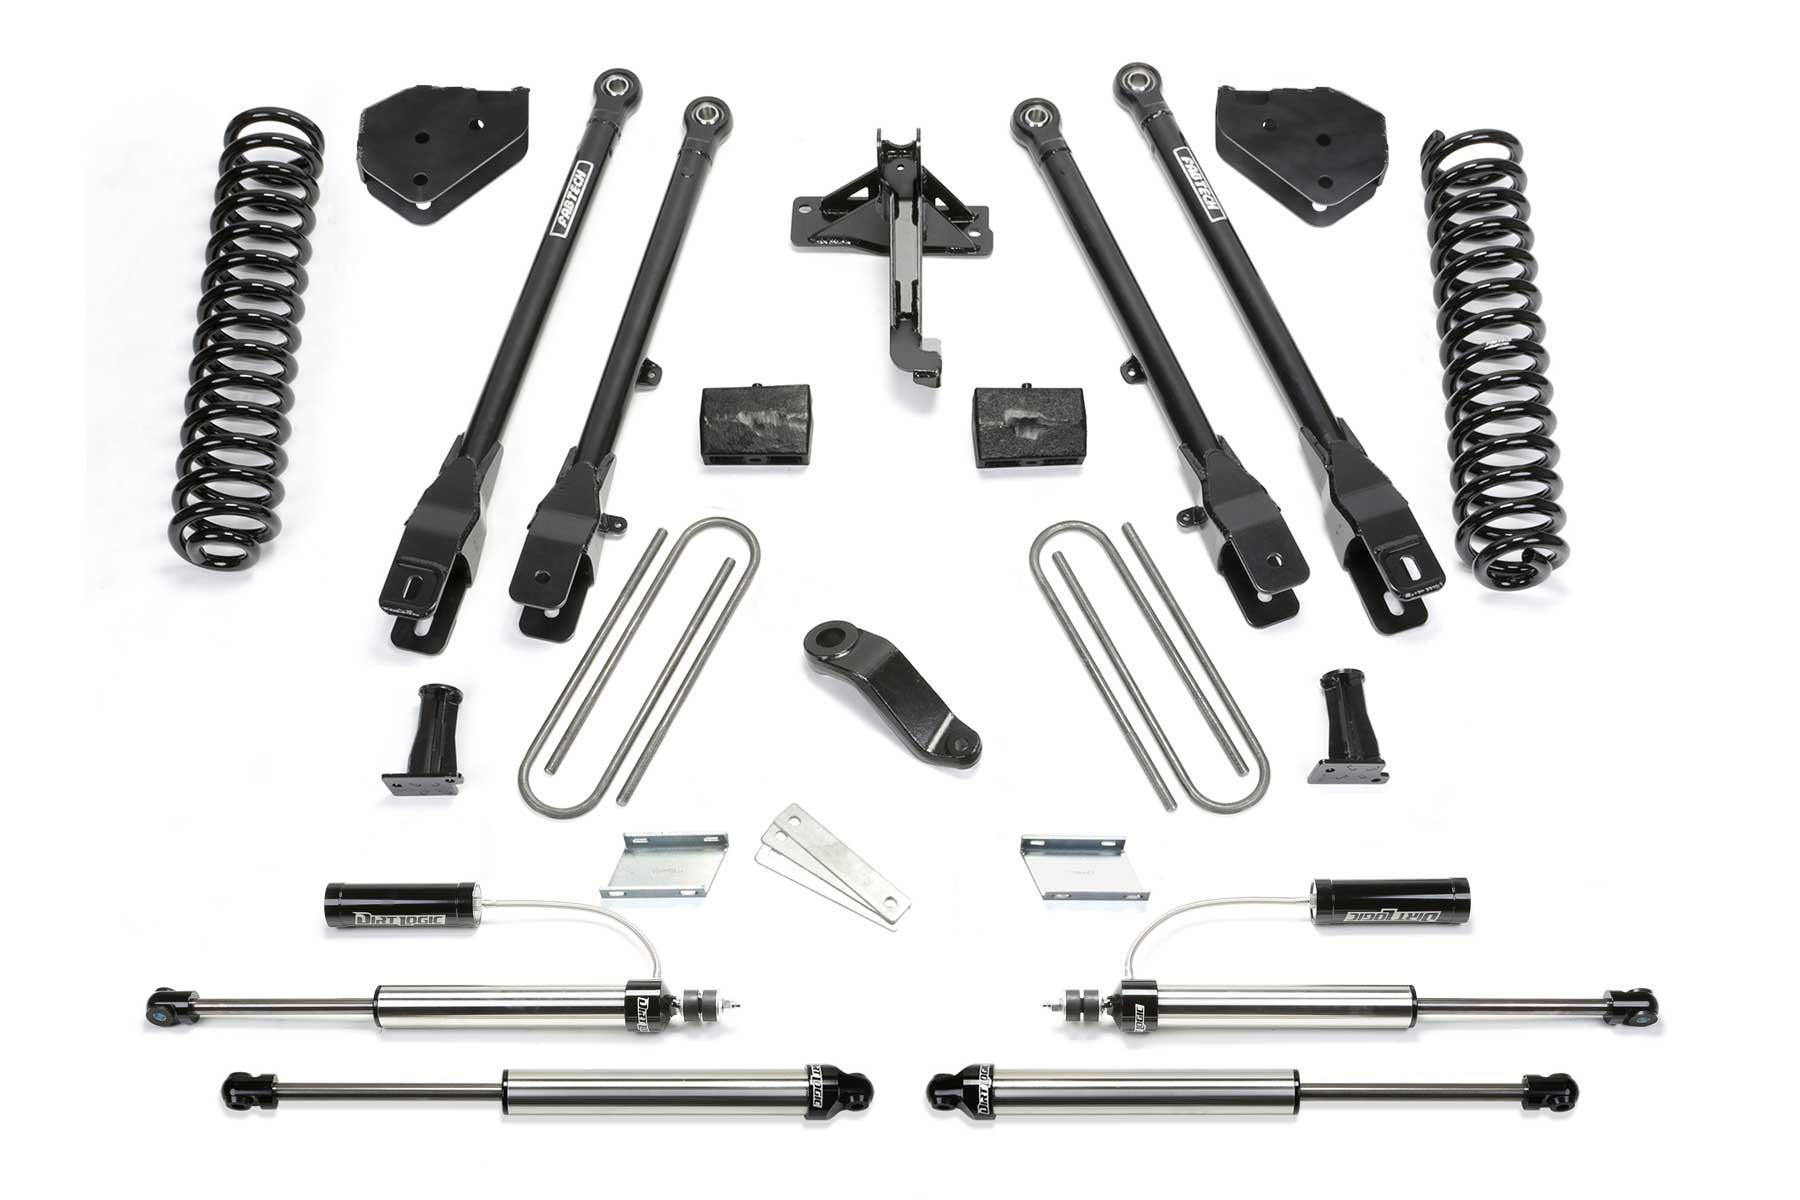 FABTECH 2017-18 FORD F250 / F350 4WD [6.2L. GAS]- 6″ 4 LINK SYSTEM W/ FRONT DIRT LOGIC 2.25 RESI SHOCKS & REAR DIRT LOGIC SHOCKS